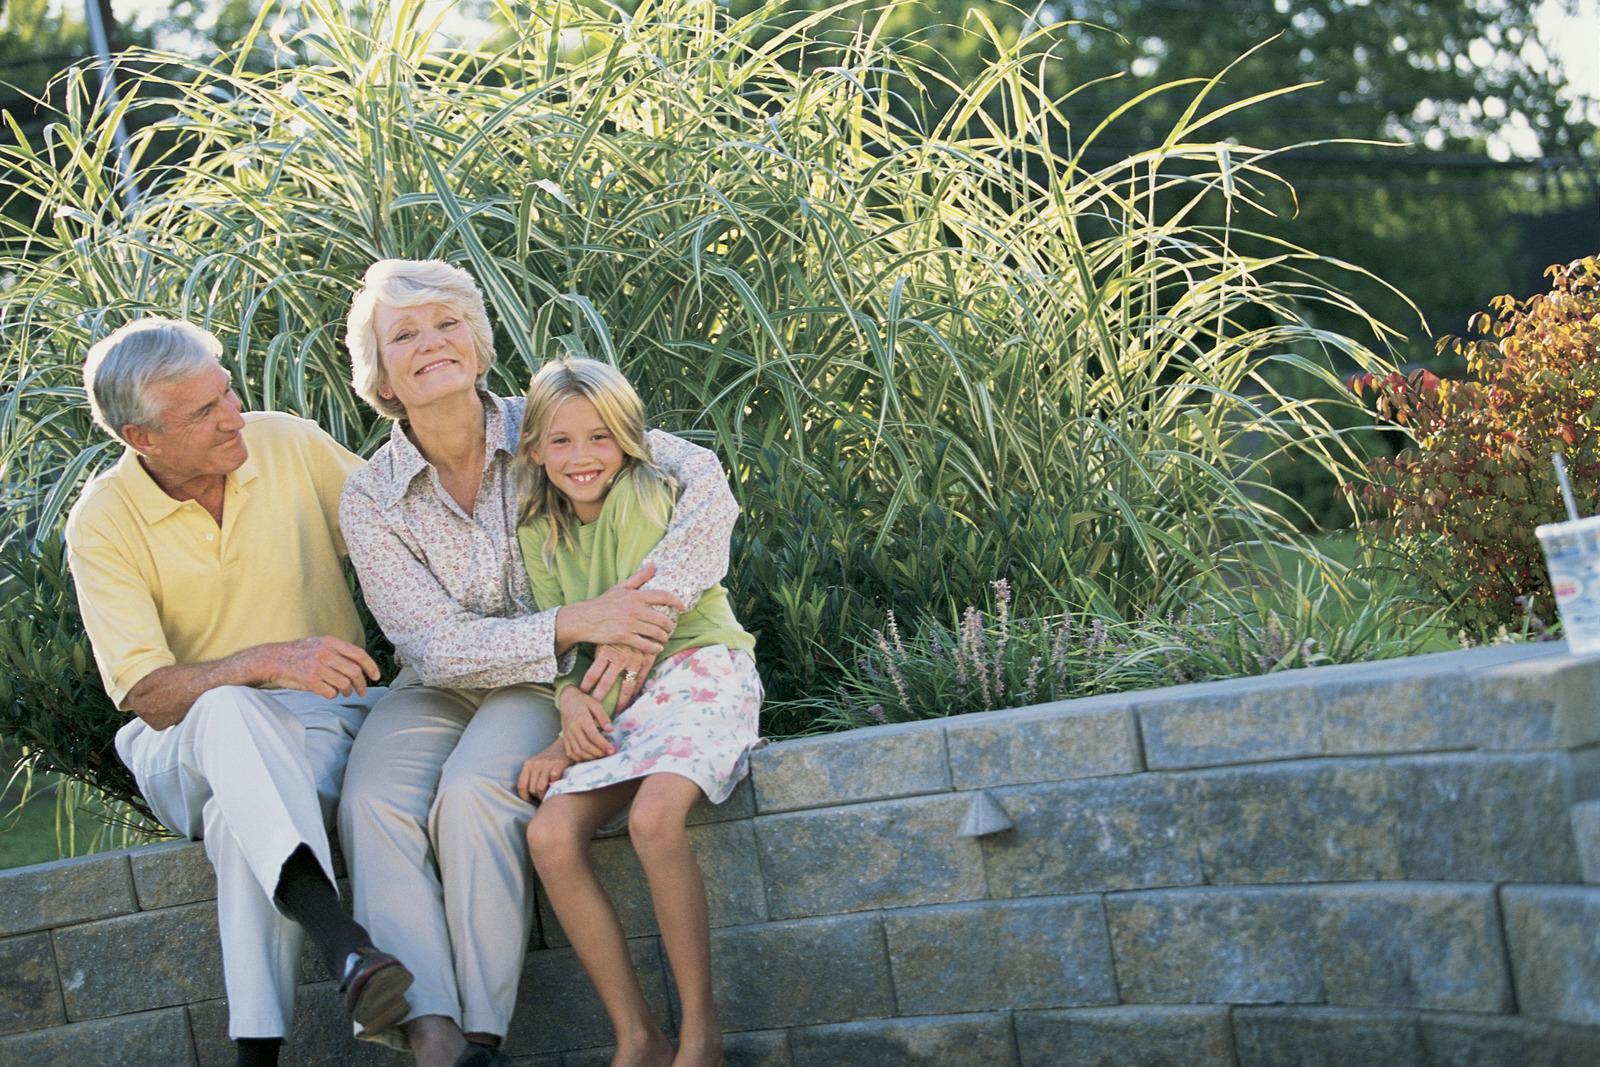 Grandparent's Day: Family Reflection Video